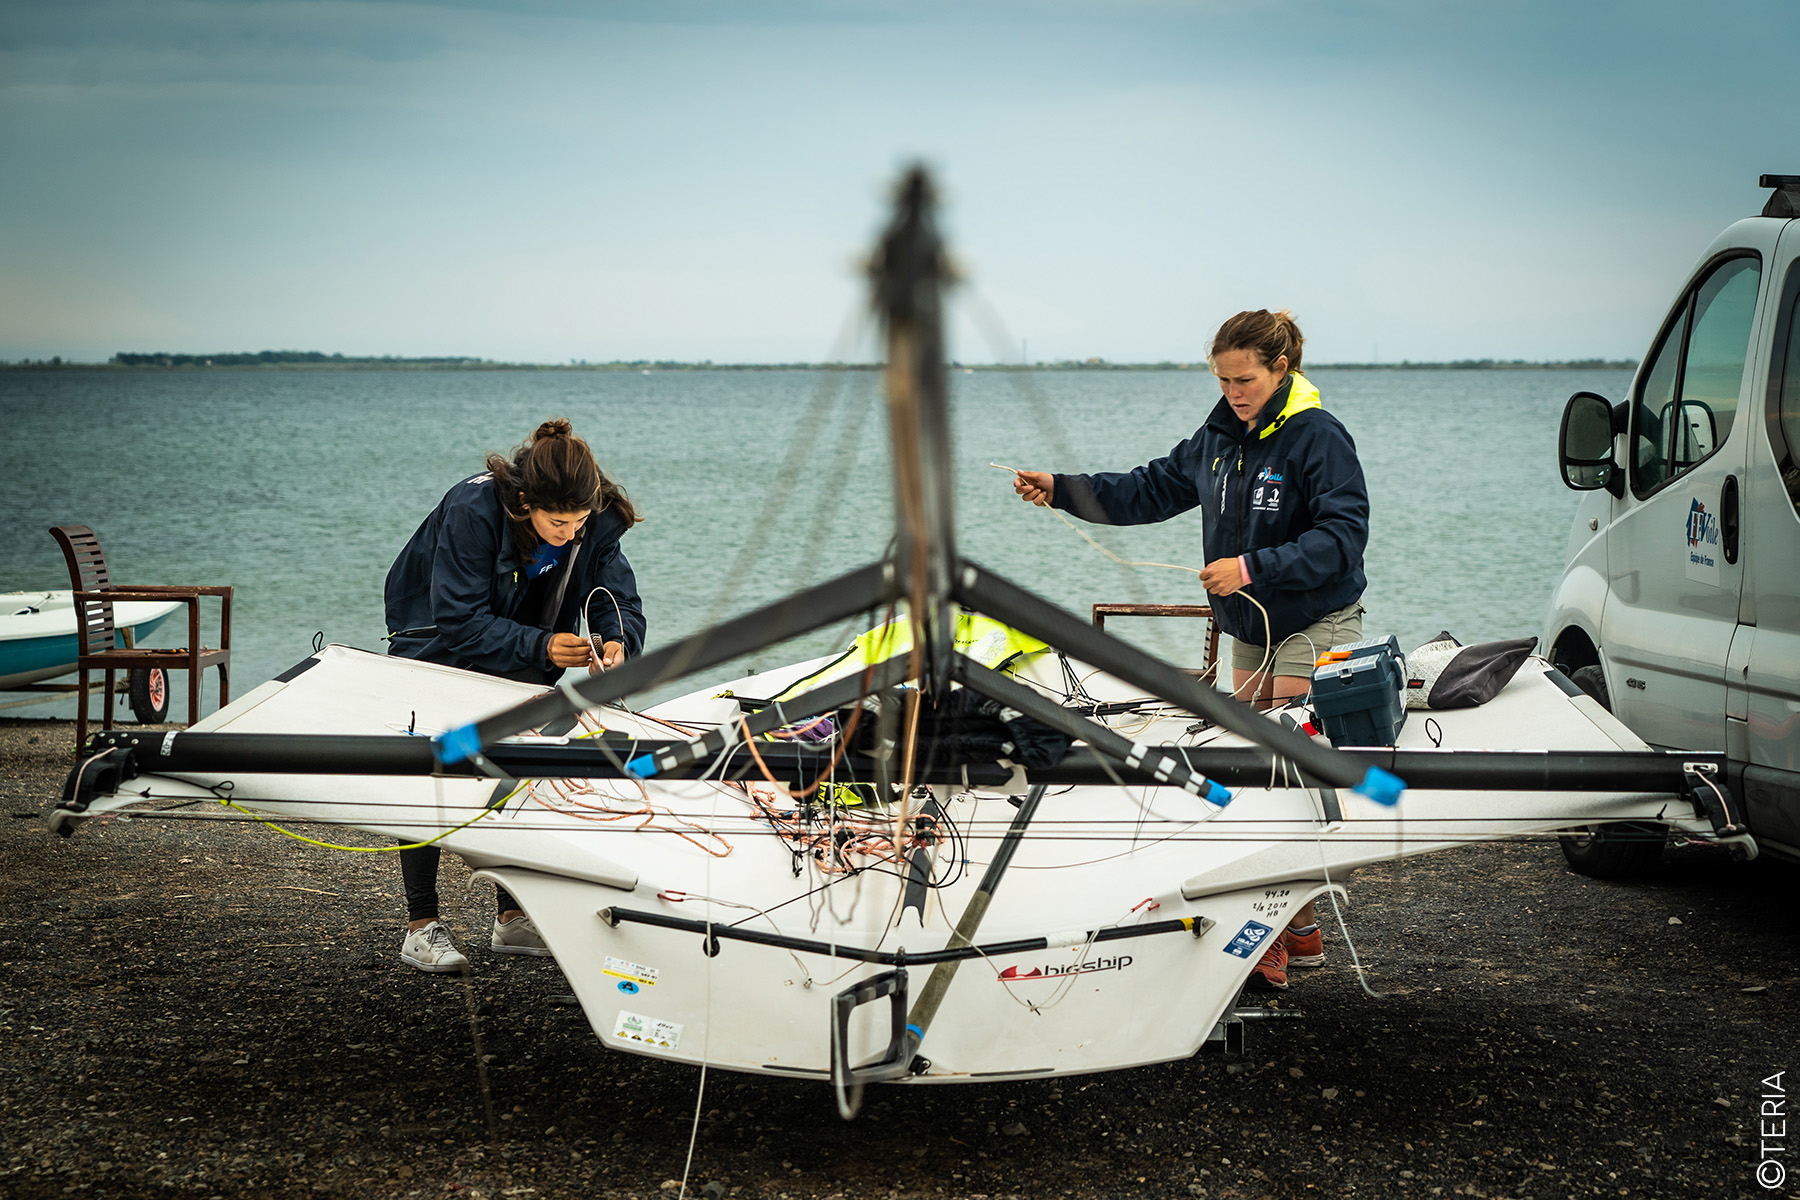 New boat and gold medal for the duo Bossard & Compan